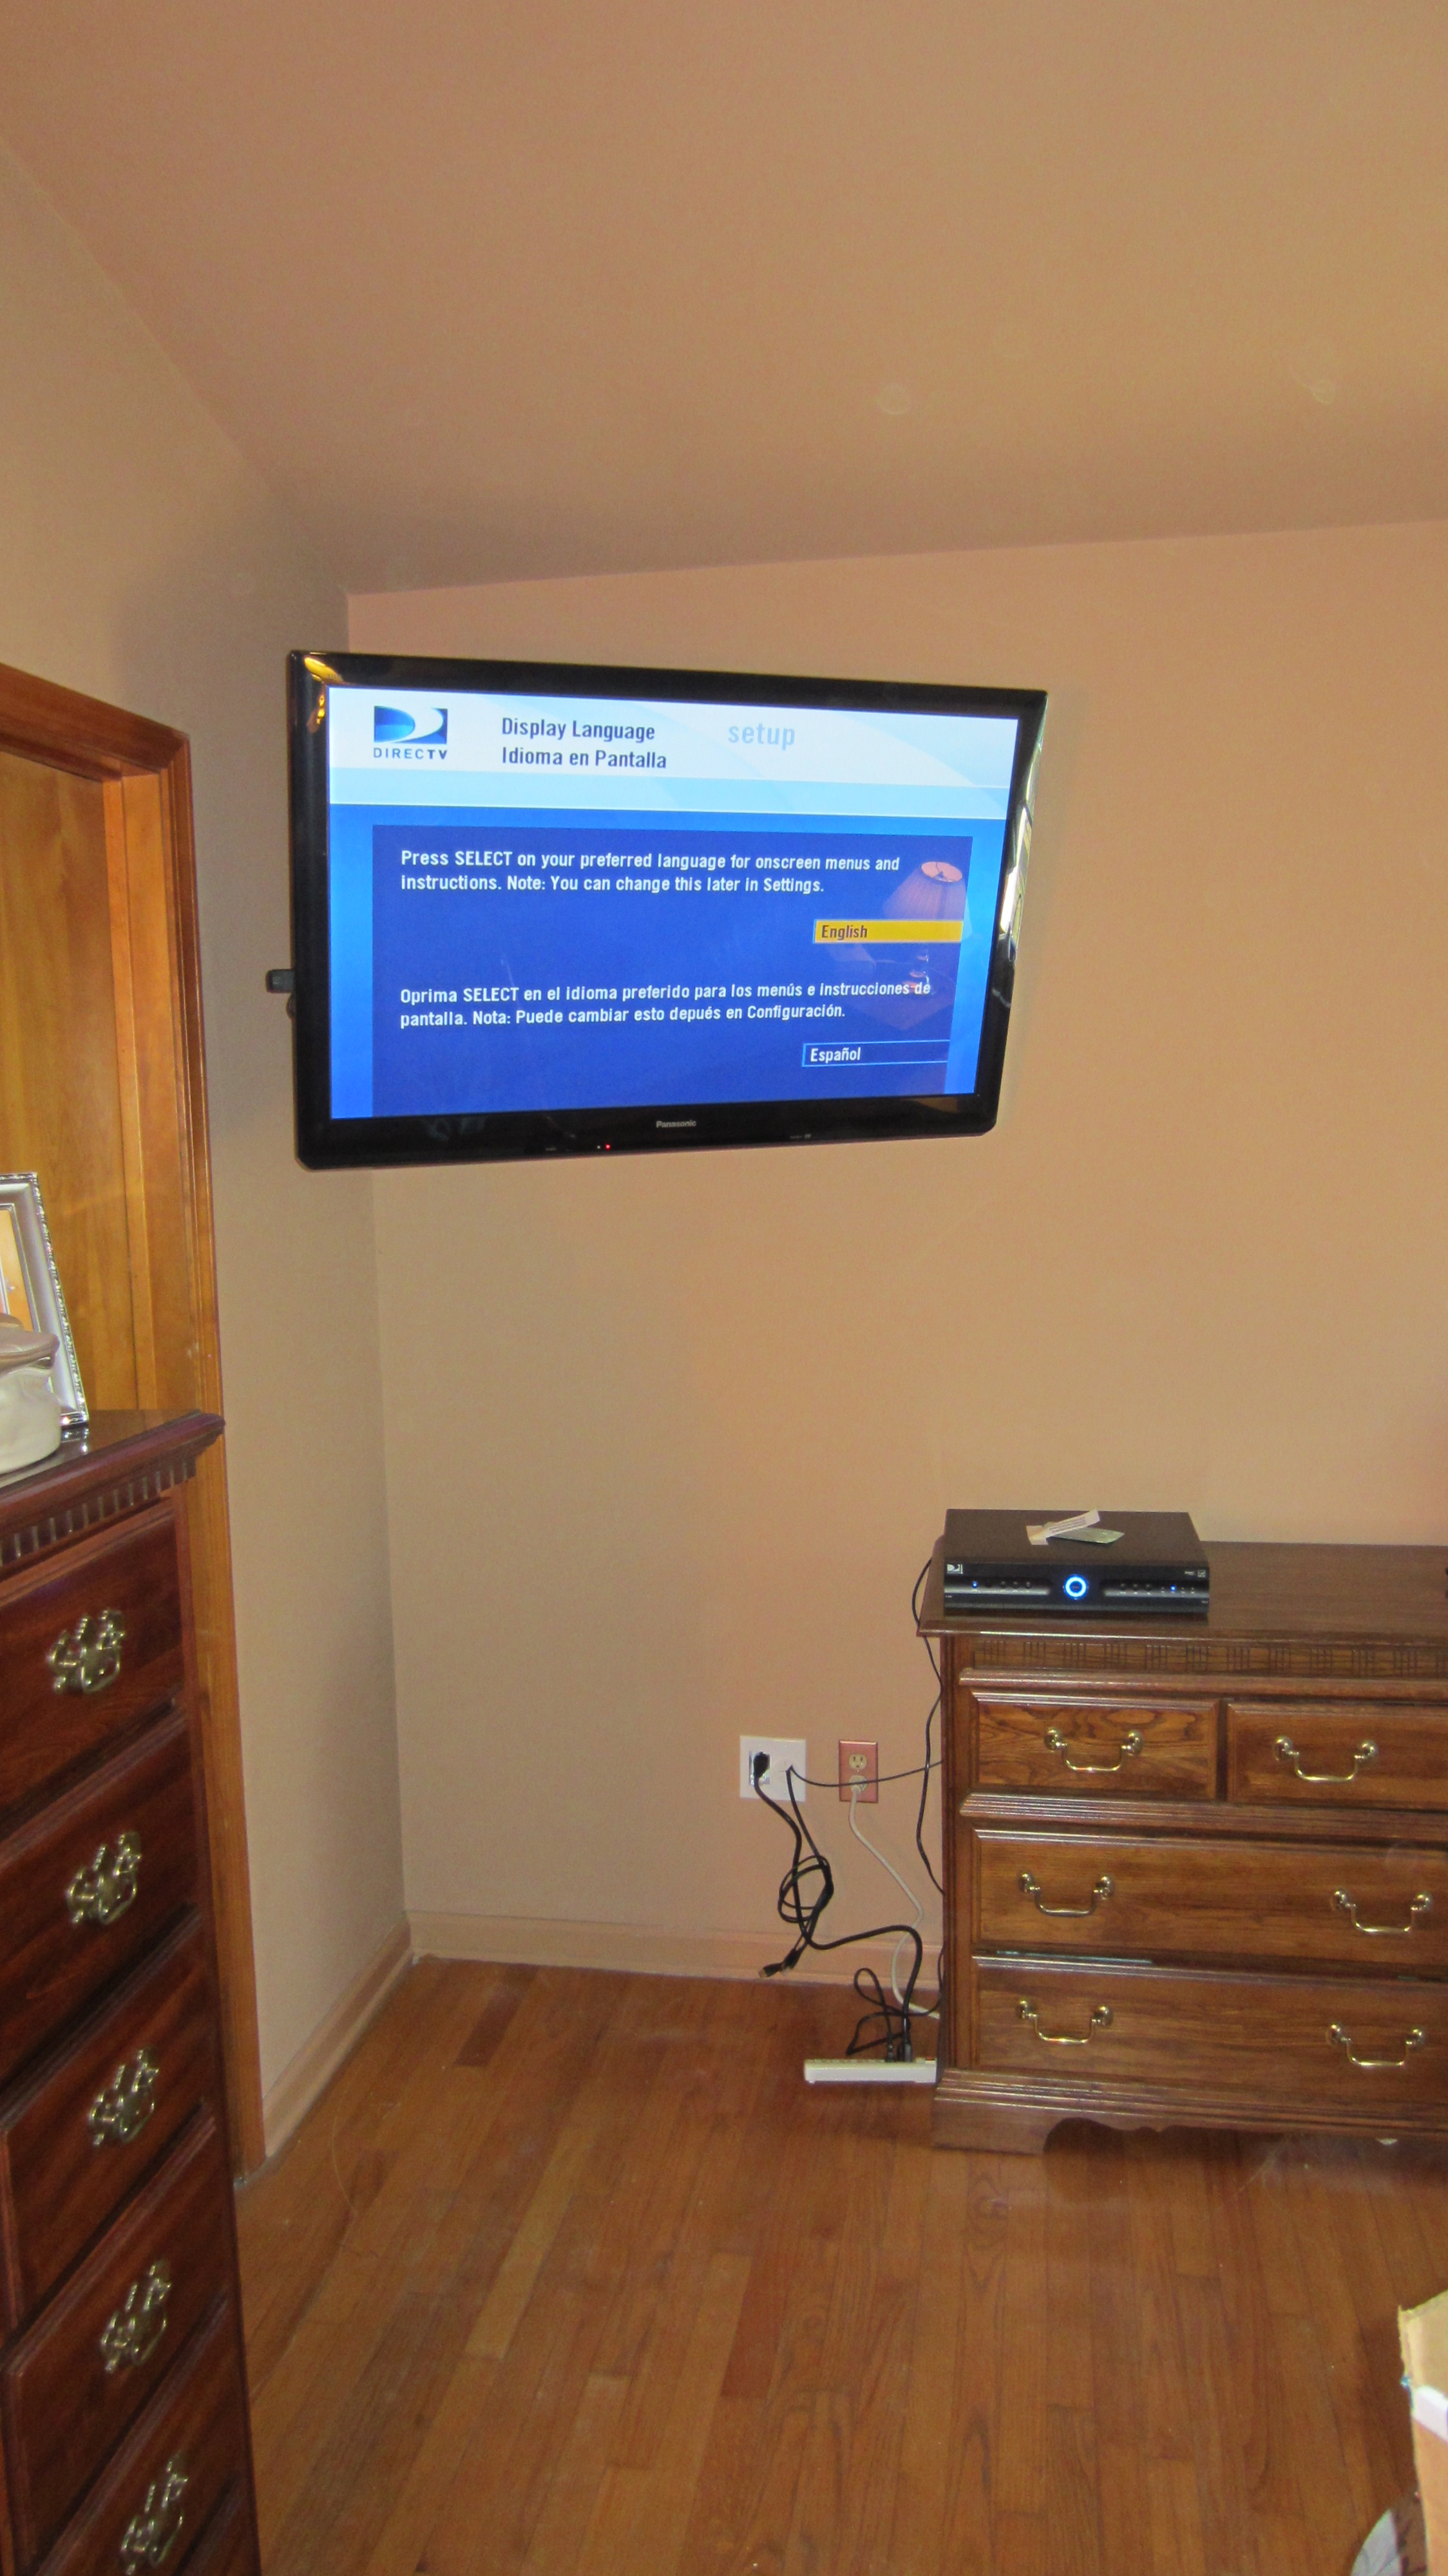 fairfield-ct-led-tv-mounting-on-wall-in-bedroom-with-wires-concealed-1